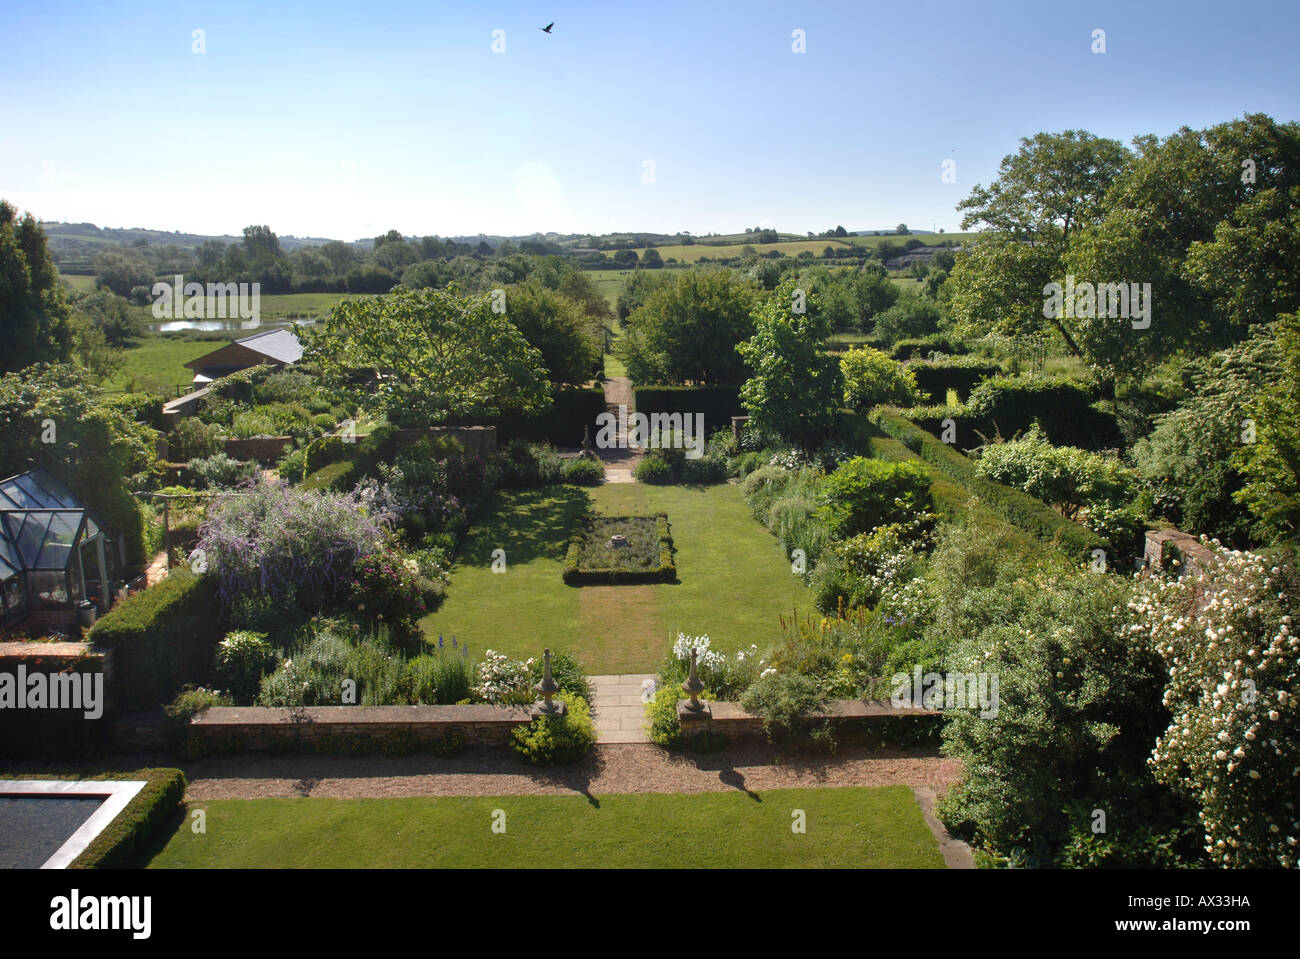 THE GARDEN AT MANOR FARM SOMERSET BY GARDEN DESIGNER SIMON JOHNSON UK Stock Photo